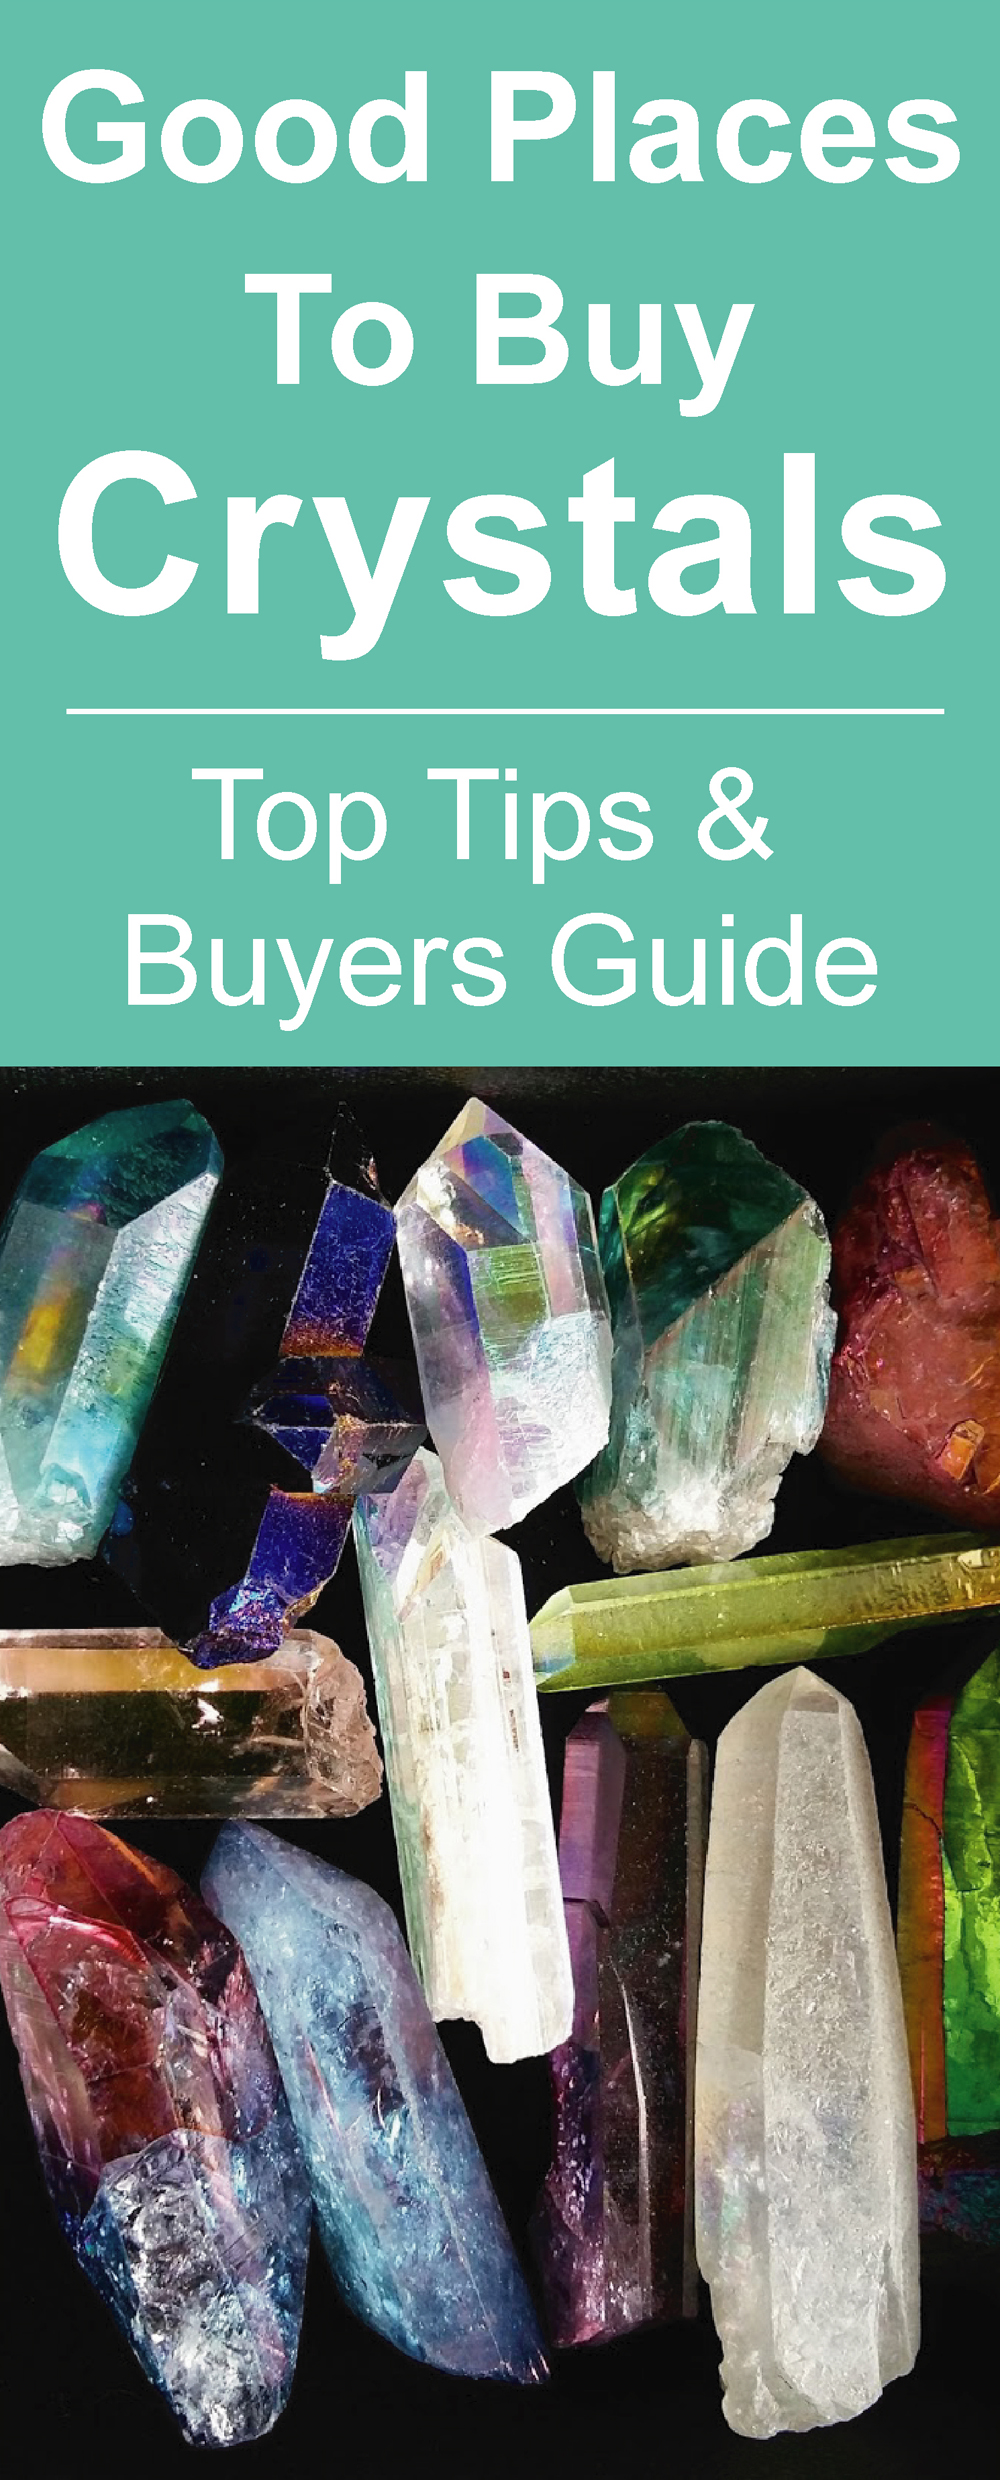 Good Places To Buy Crystals - Top Tips and Buyers Guide